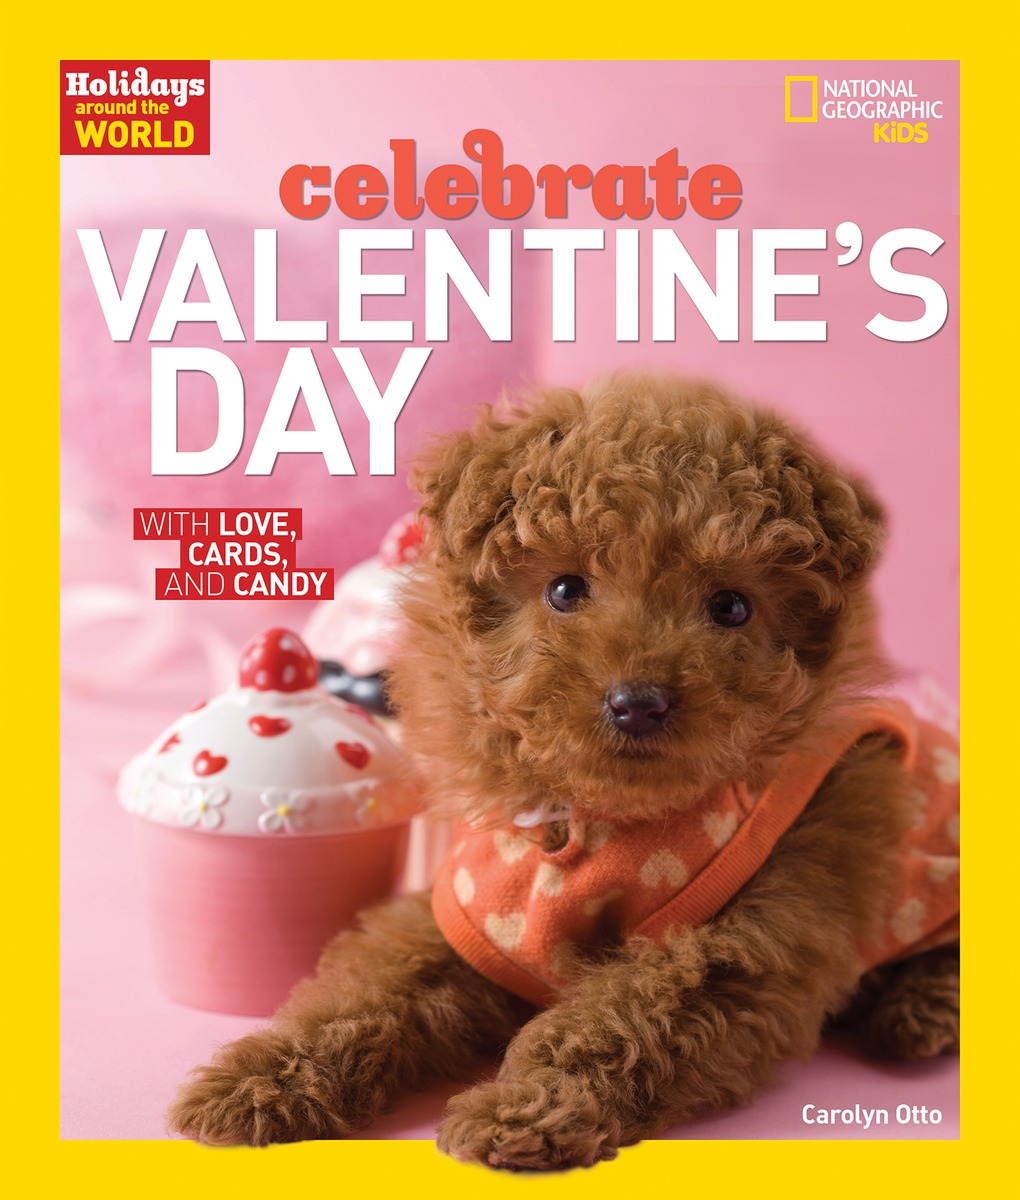 Holidays Around the World: Celebrate Valentine's Day sweet berry go and celebrate happy team